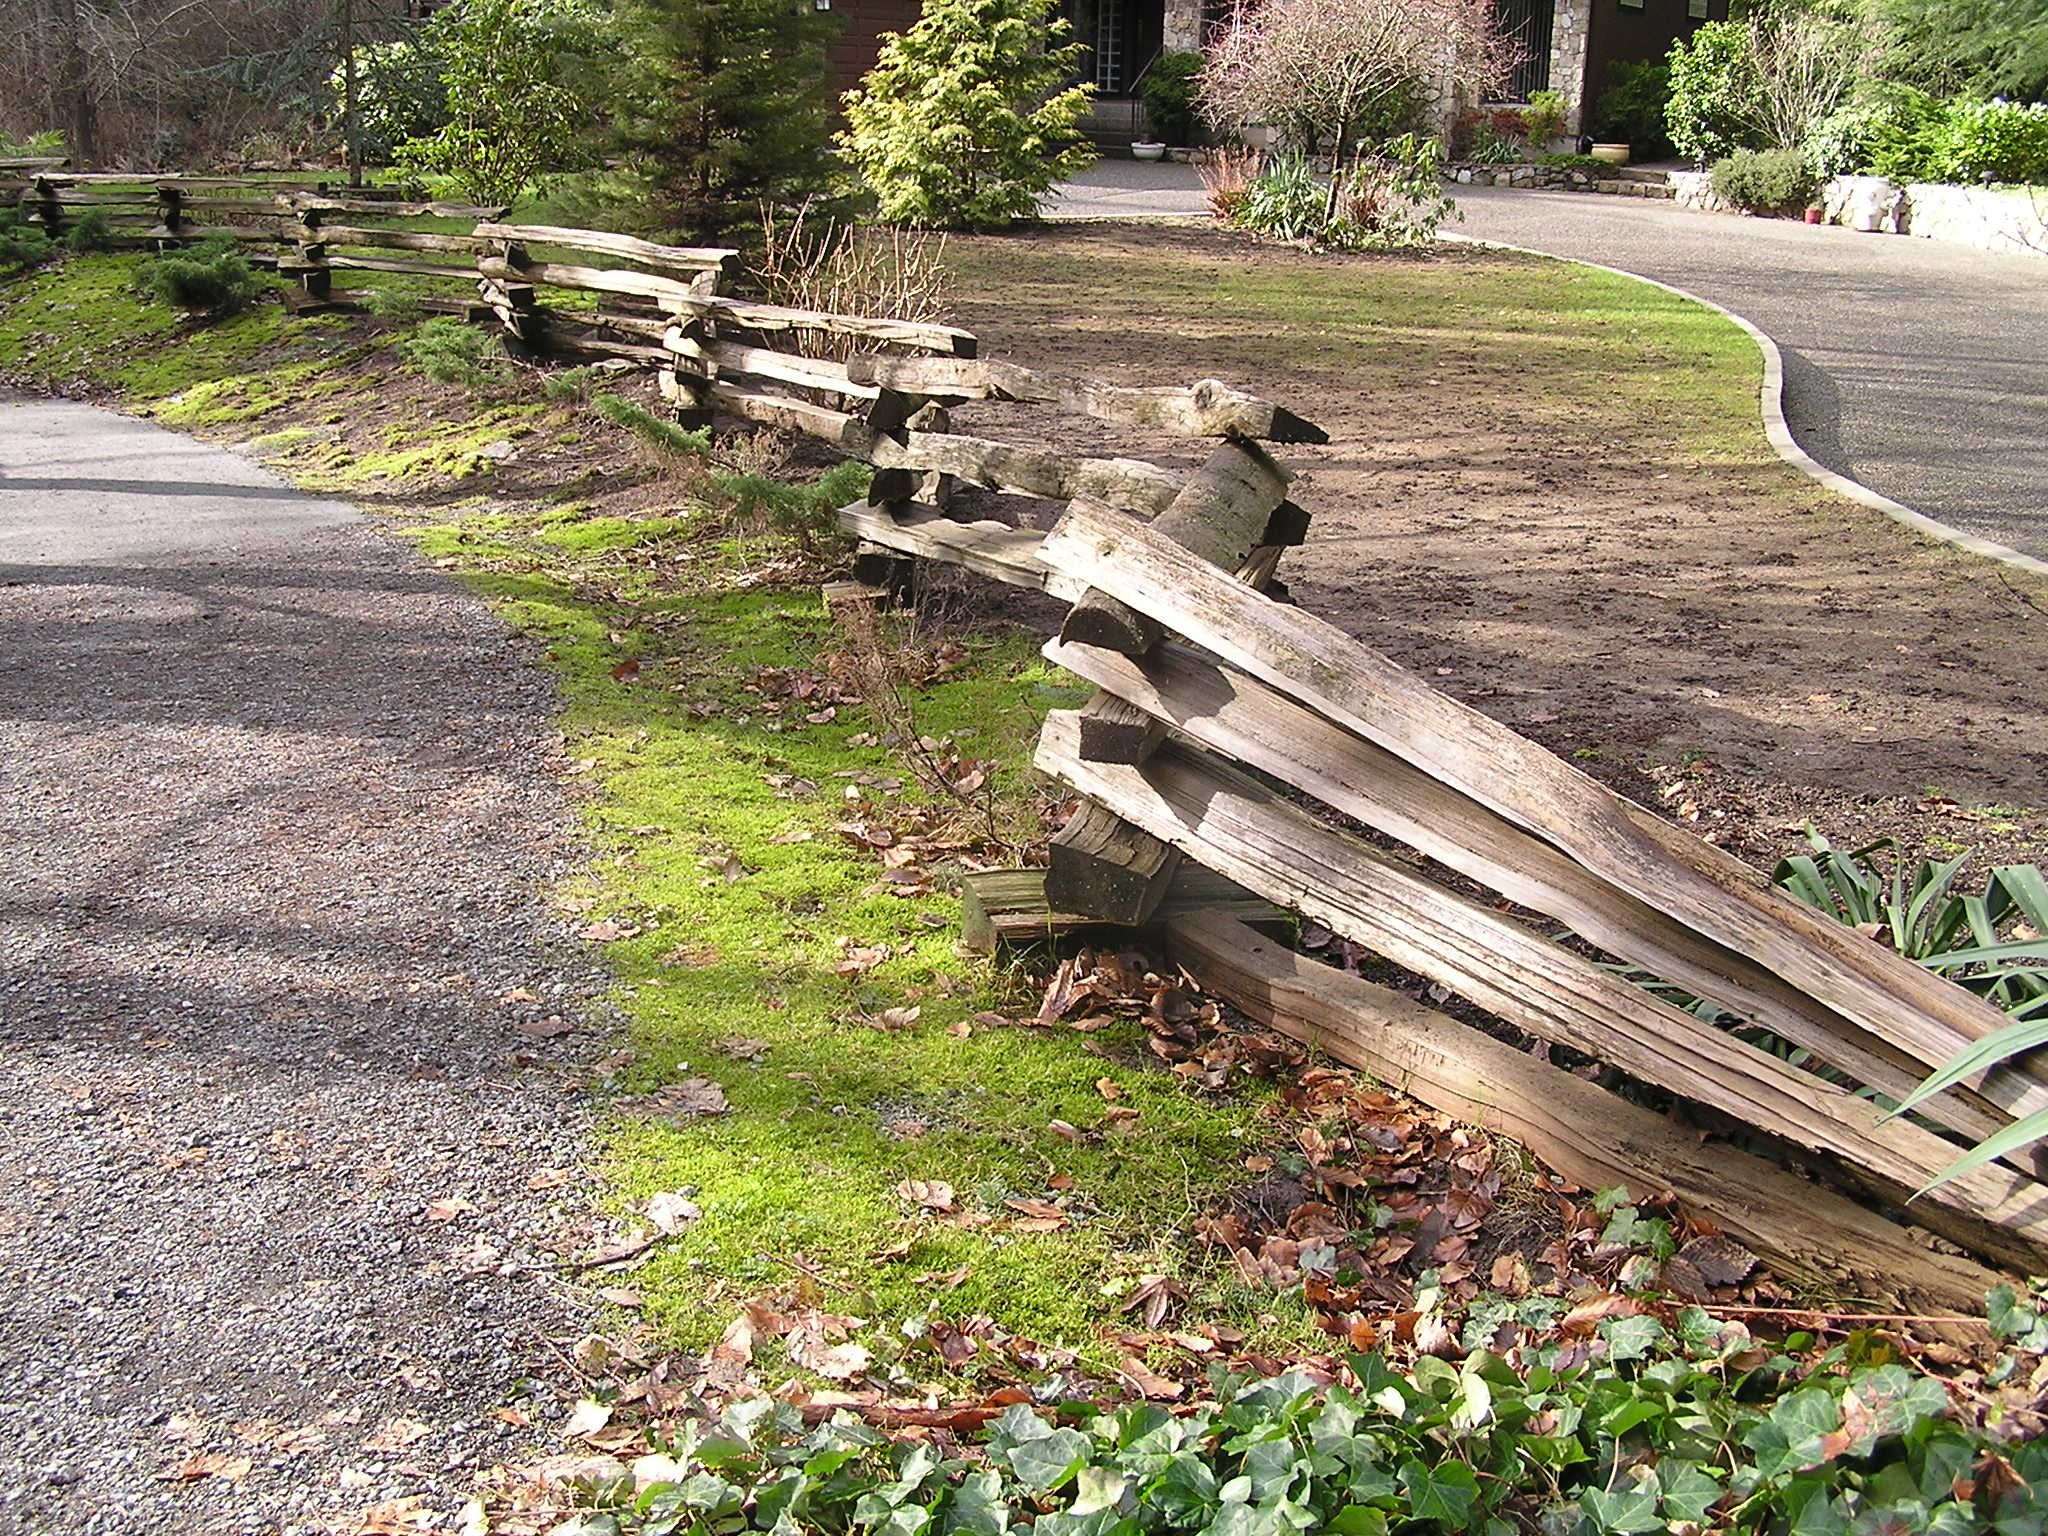 shows how the fence was installed following the trail is a